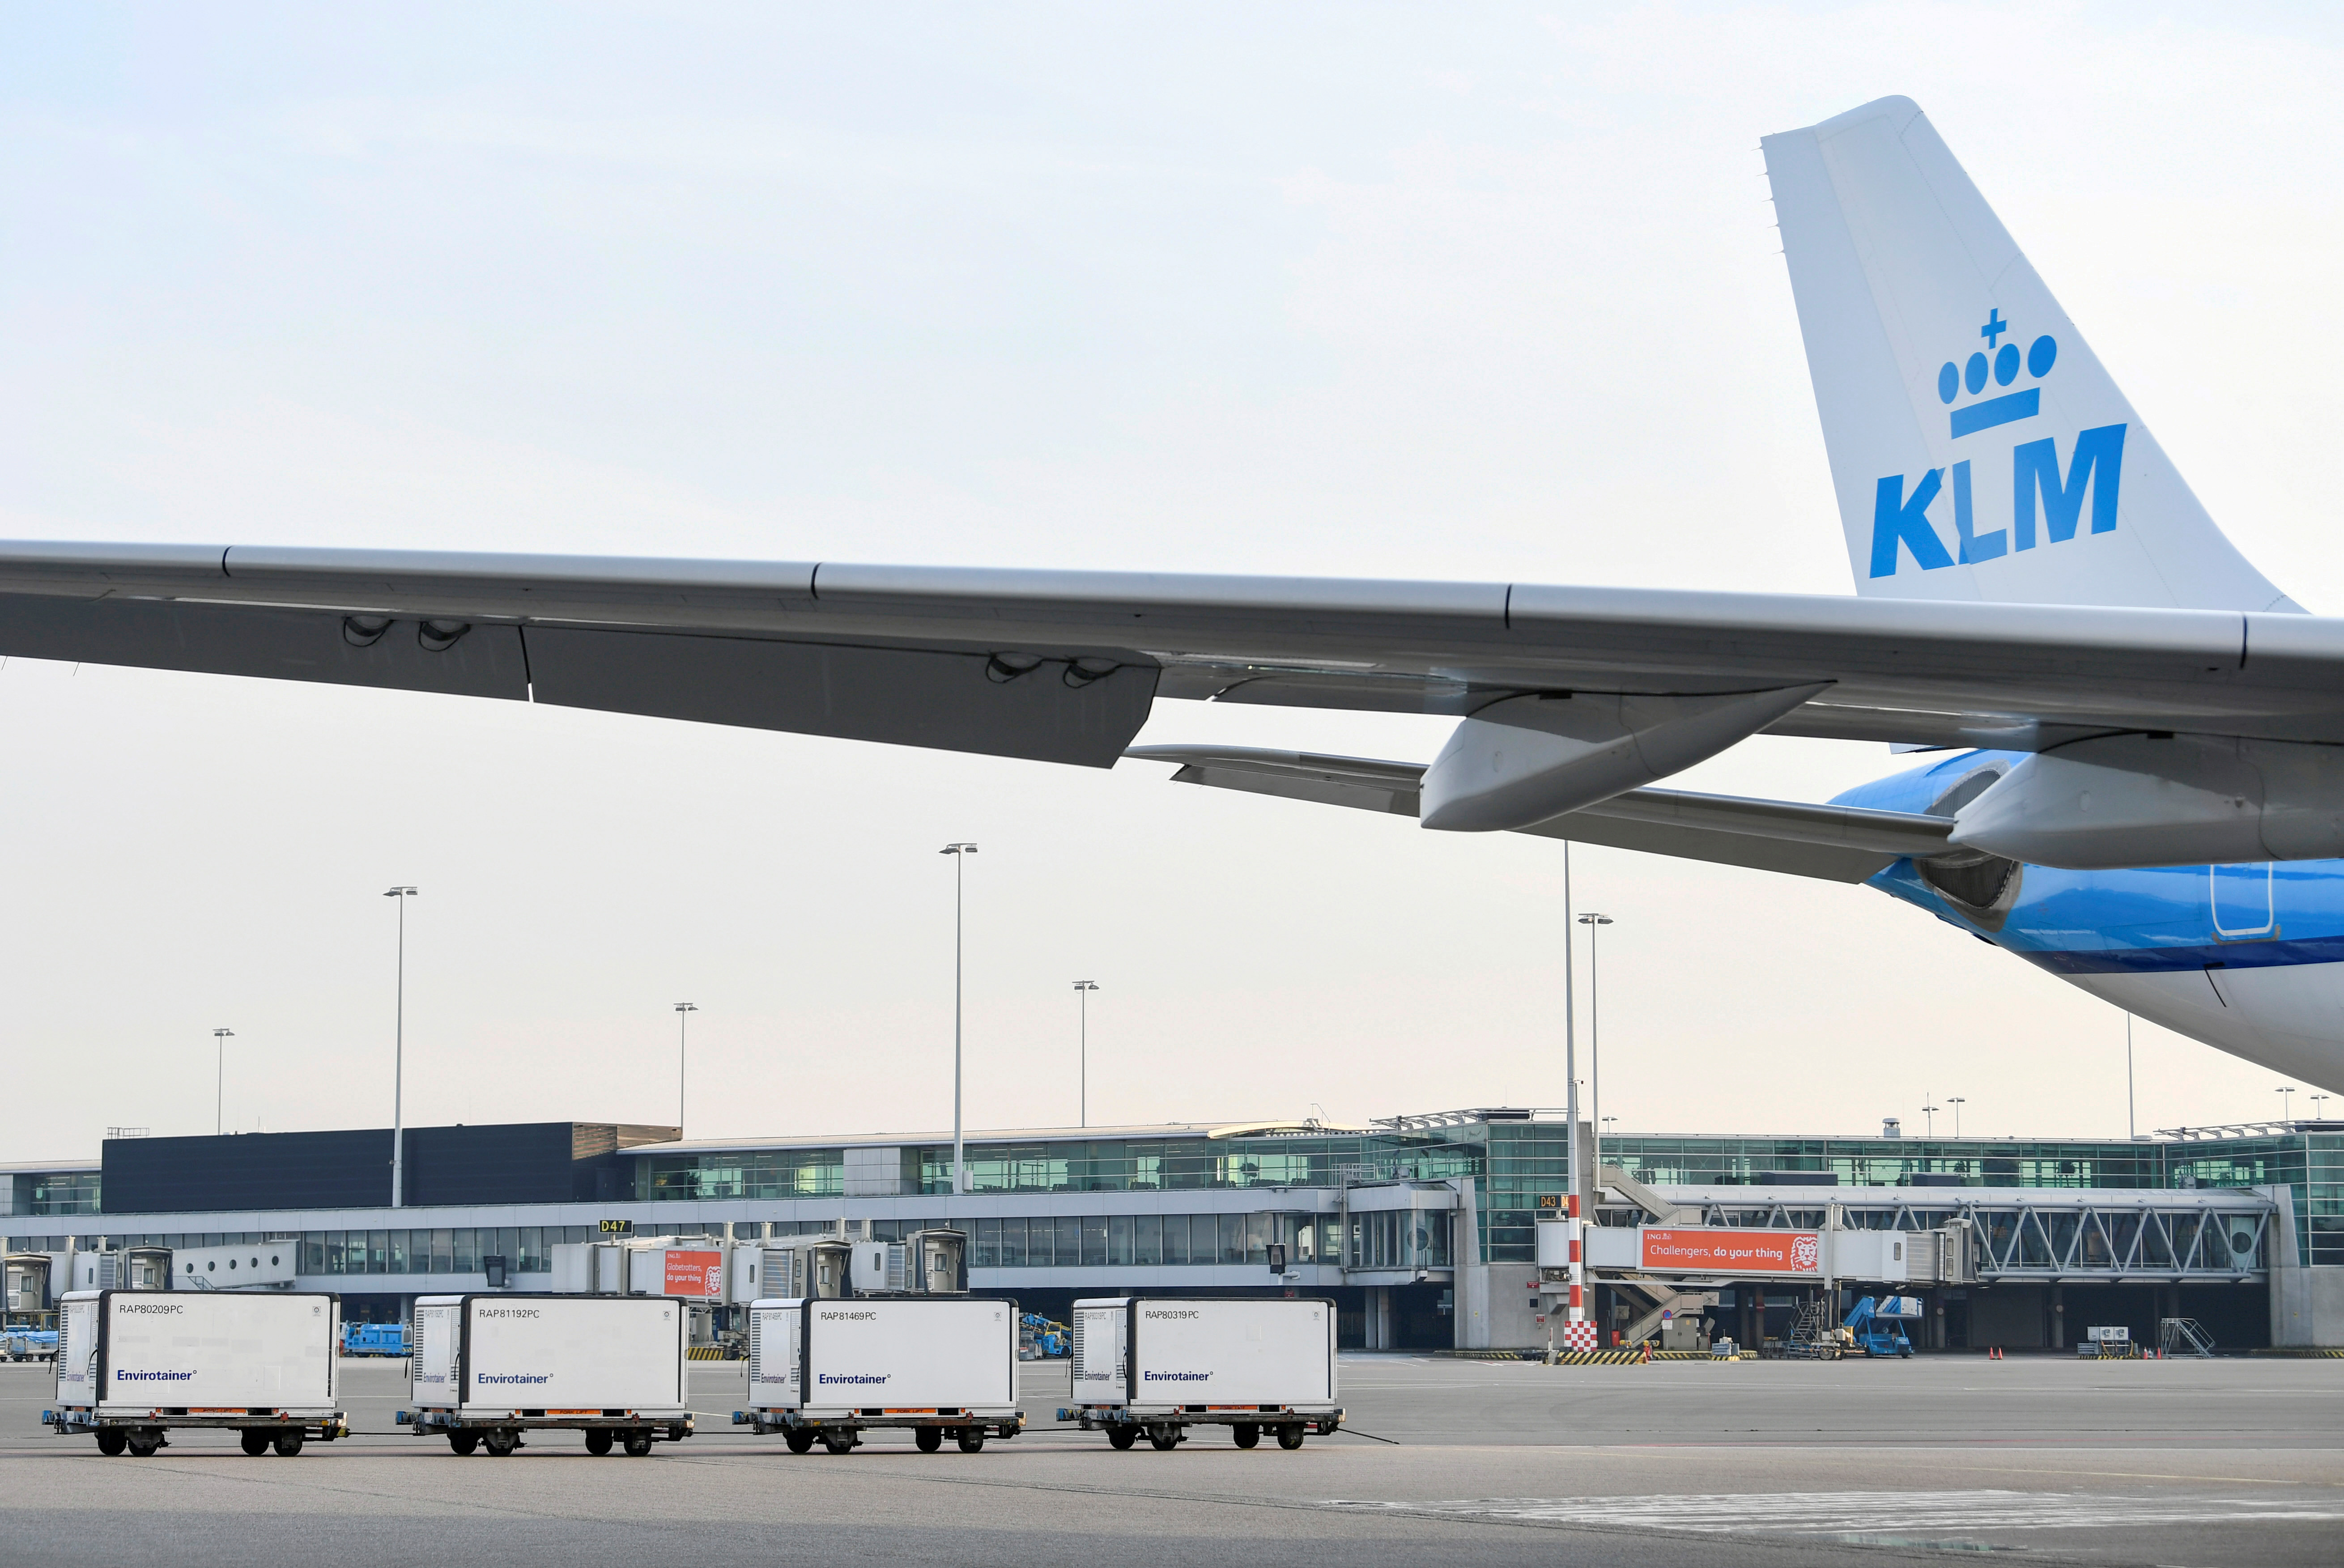 Cool boxes are seen at the Schiphol Airport as Air France-KLM prepares for a massive logistical operation carrying new vaccines and vaccine candidates for COVID-19 through Amsterdam